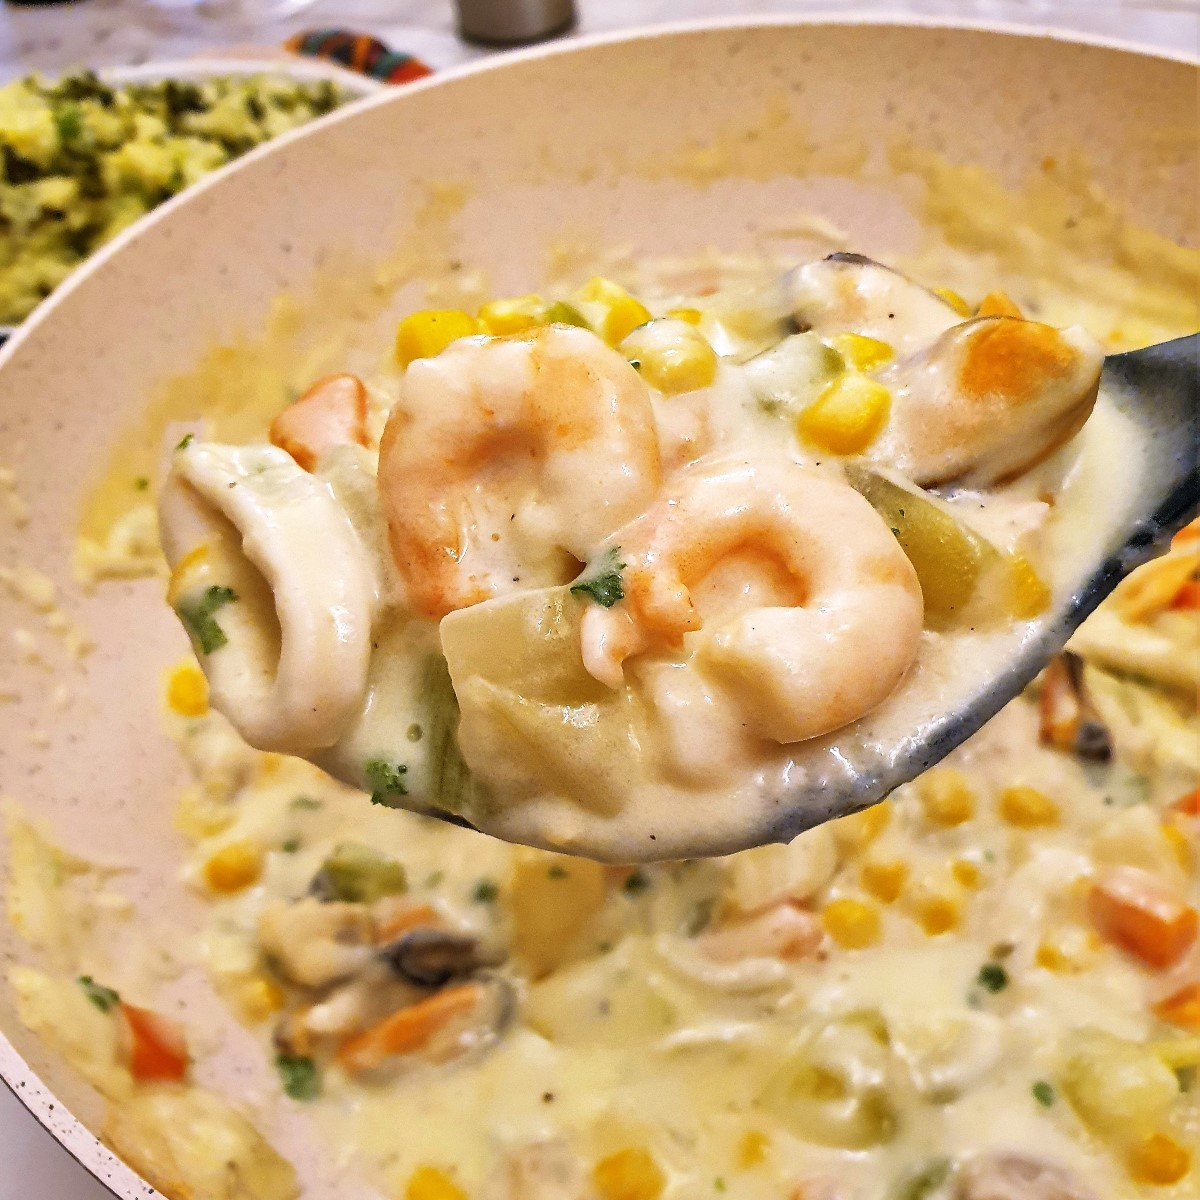 Prawns and mussels in a creamy sauce on a serving spoon.